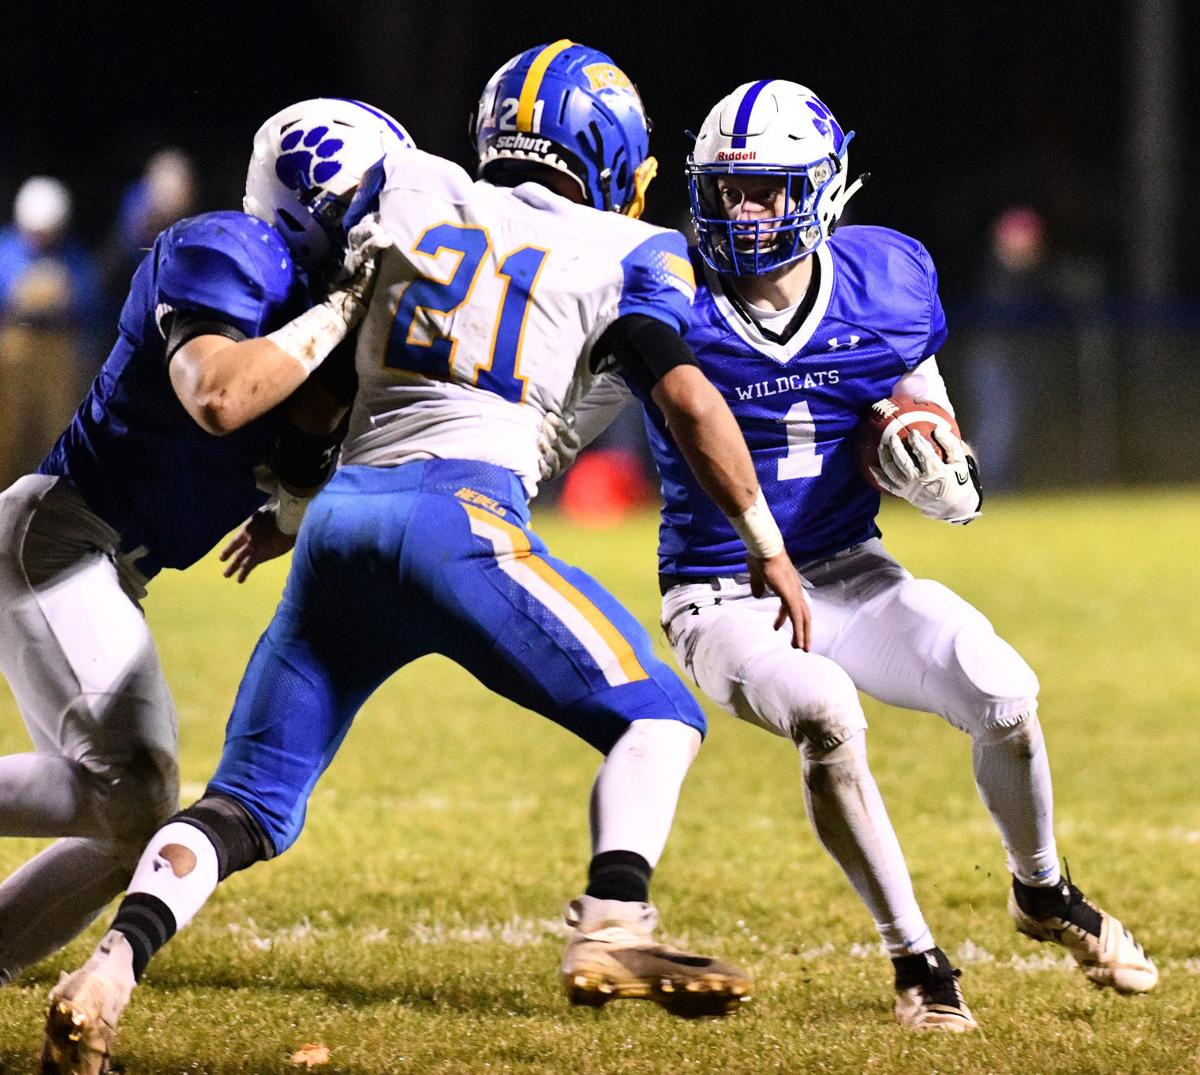 Woodbury Central vs Westwood football